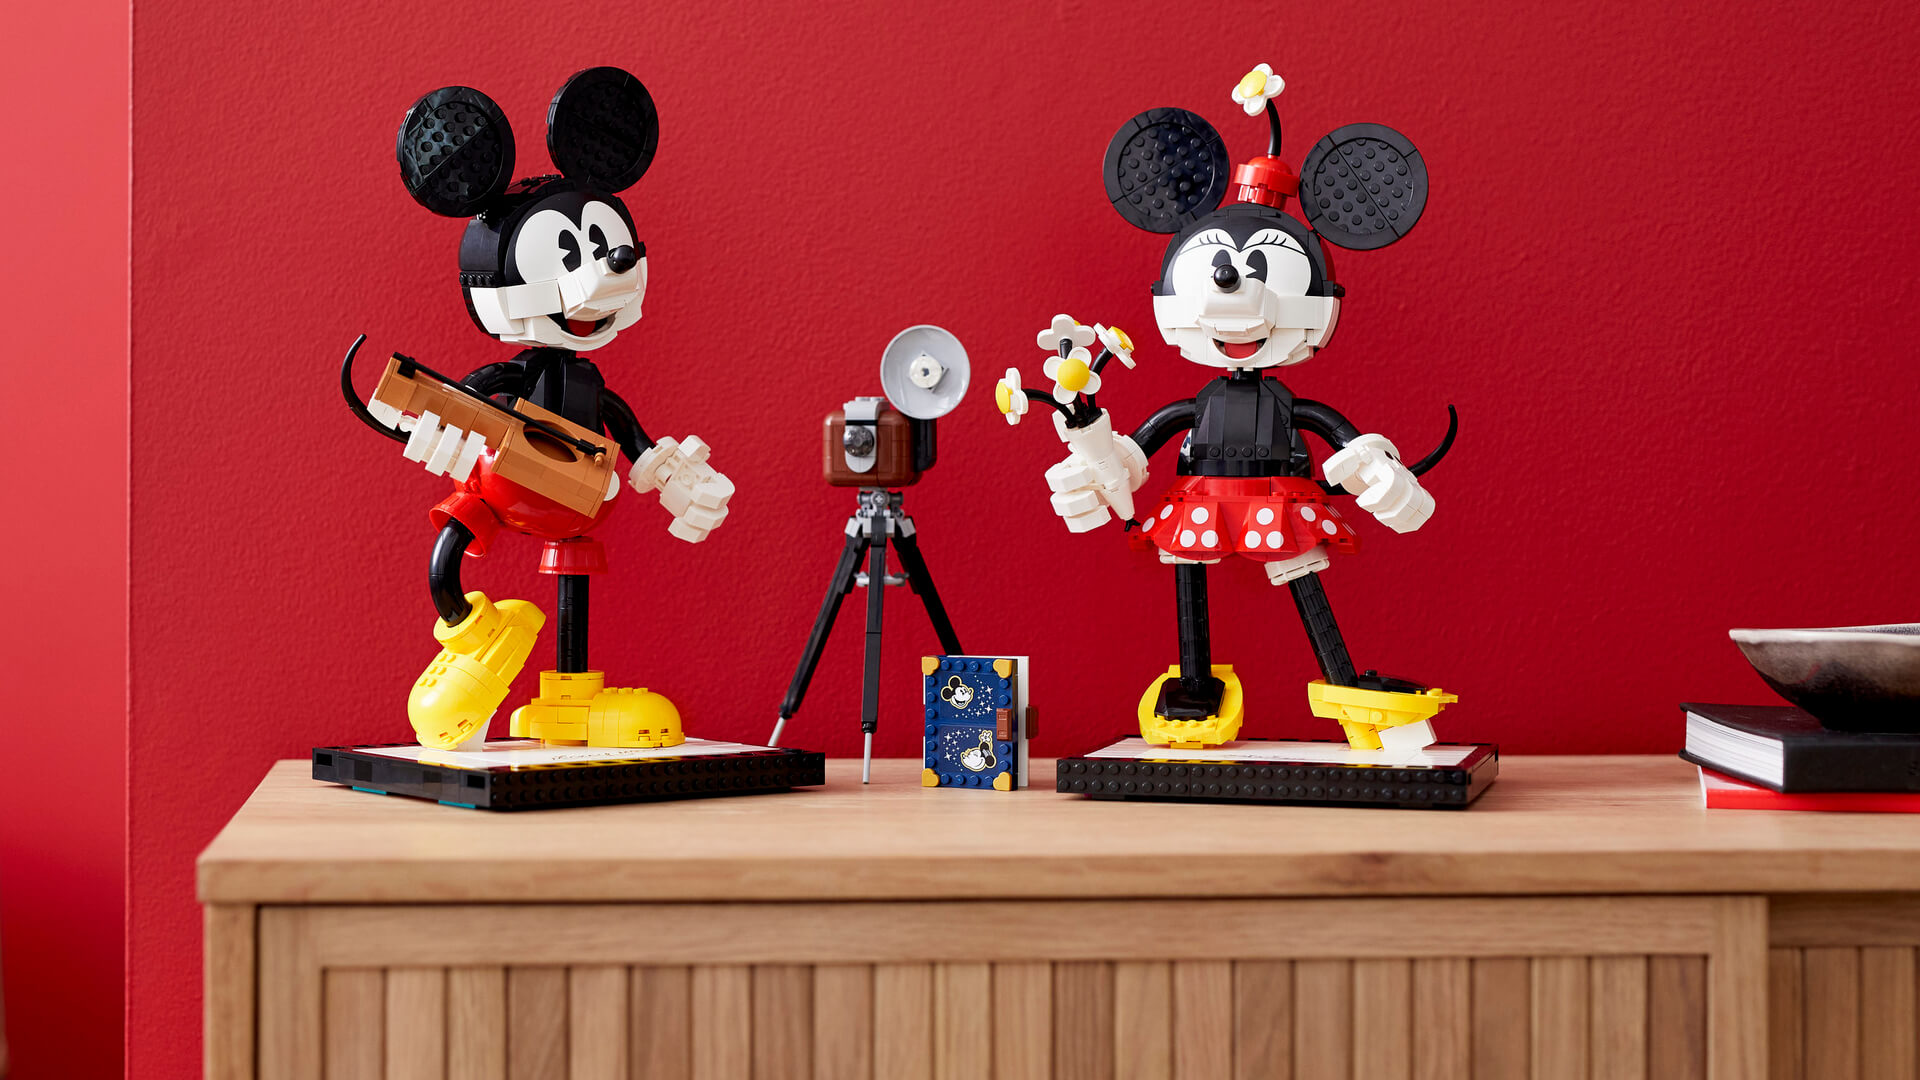 14 Inch Tall Lego Mickey And Minnie Mouse Available Soon